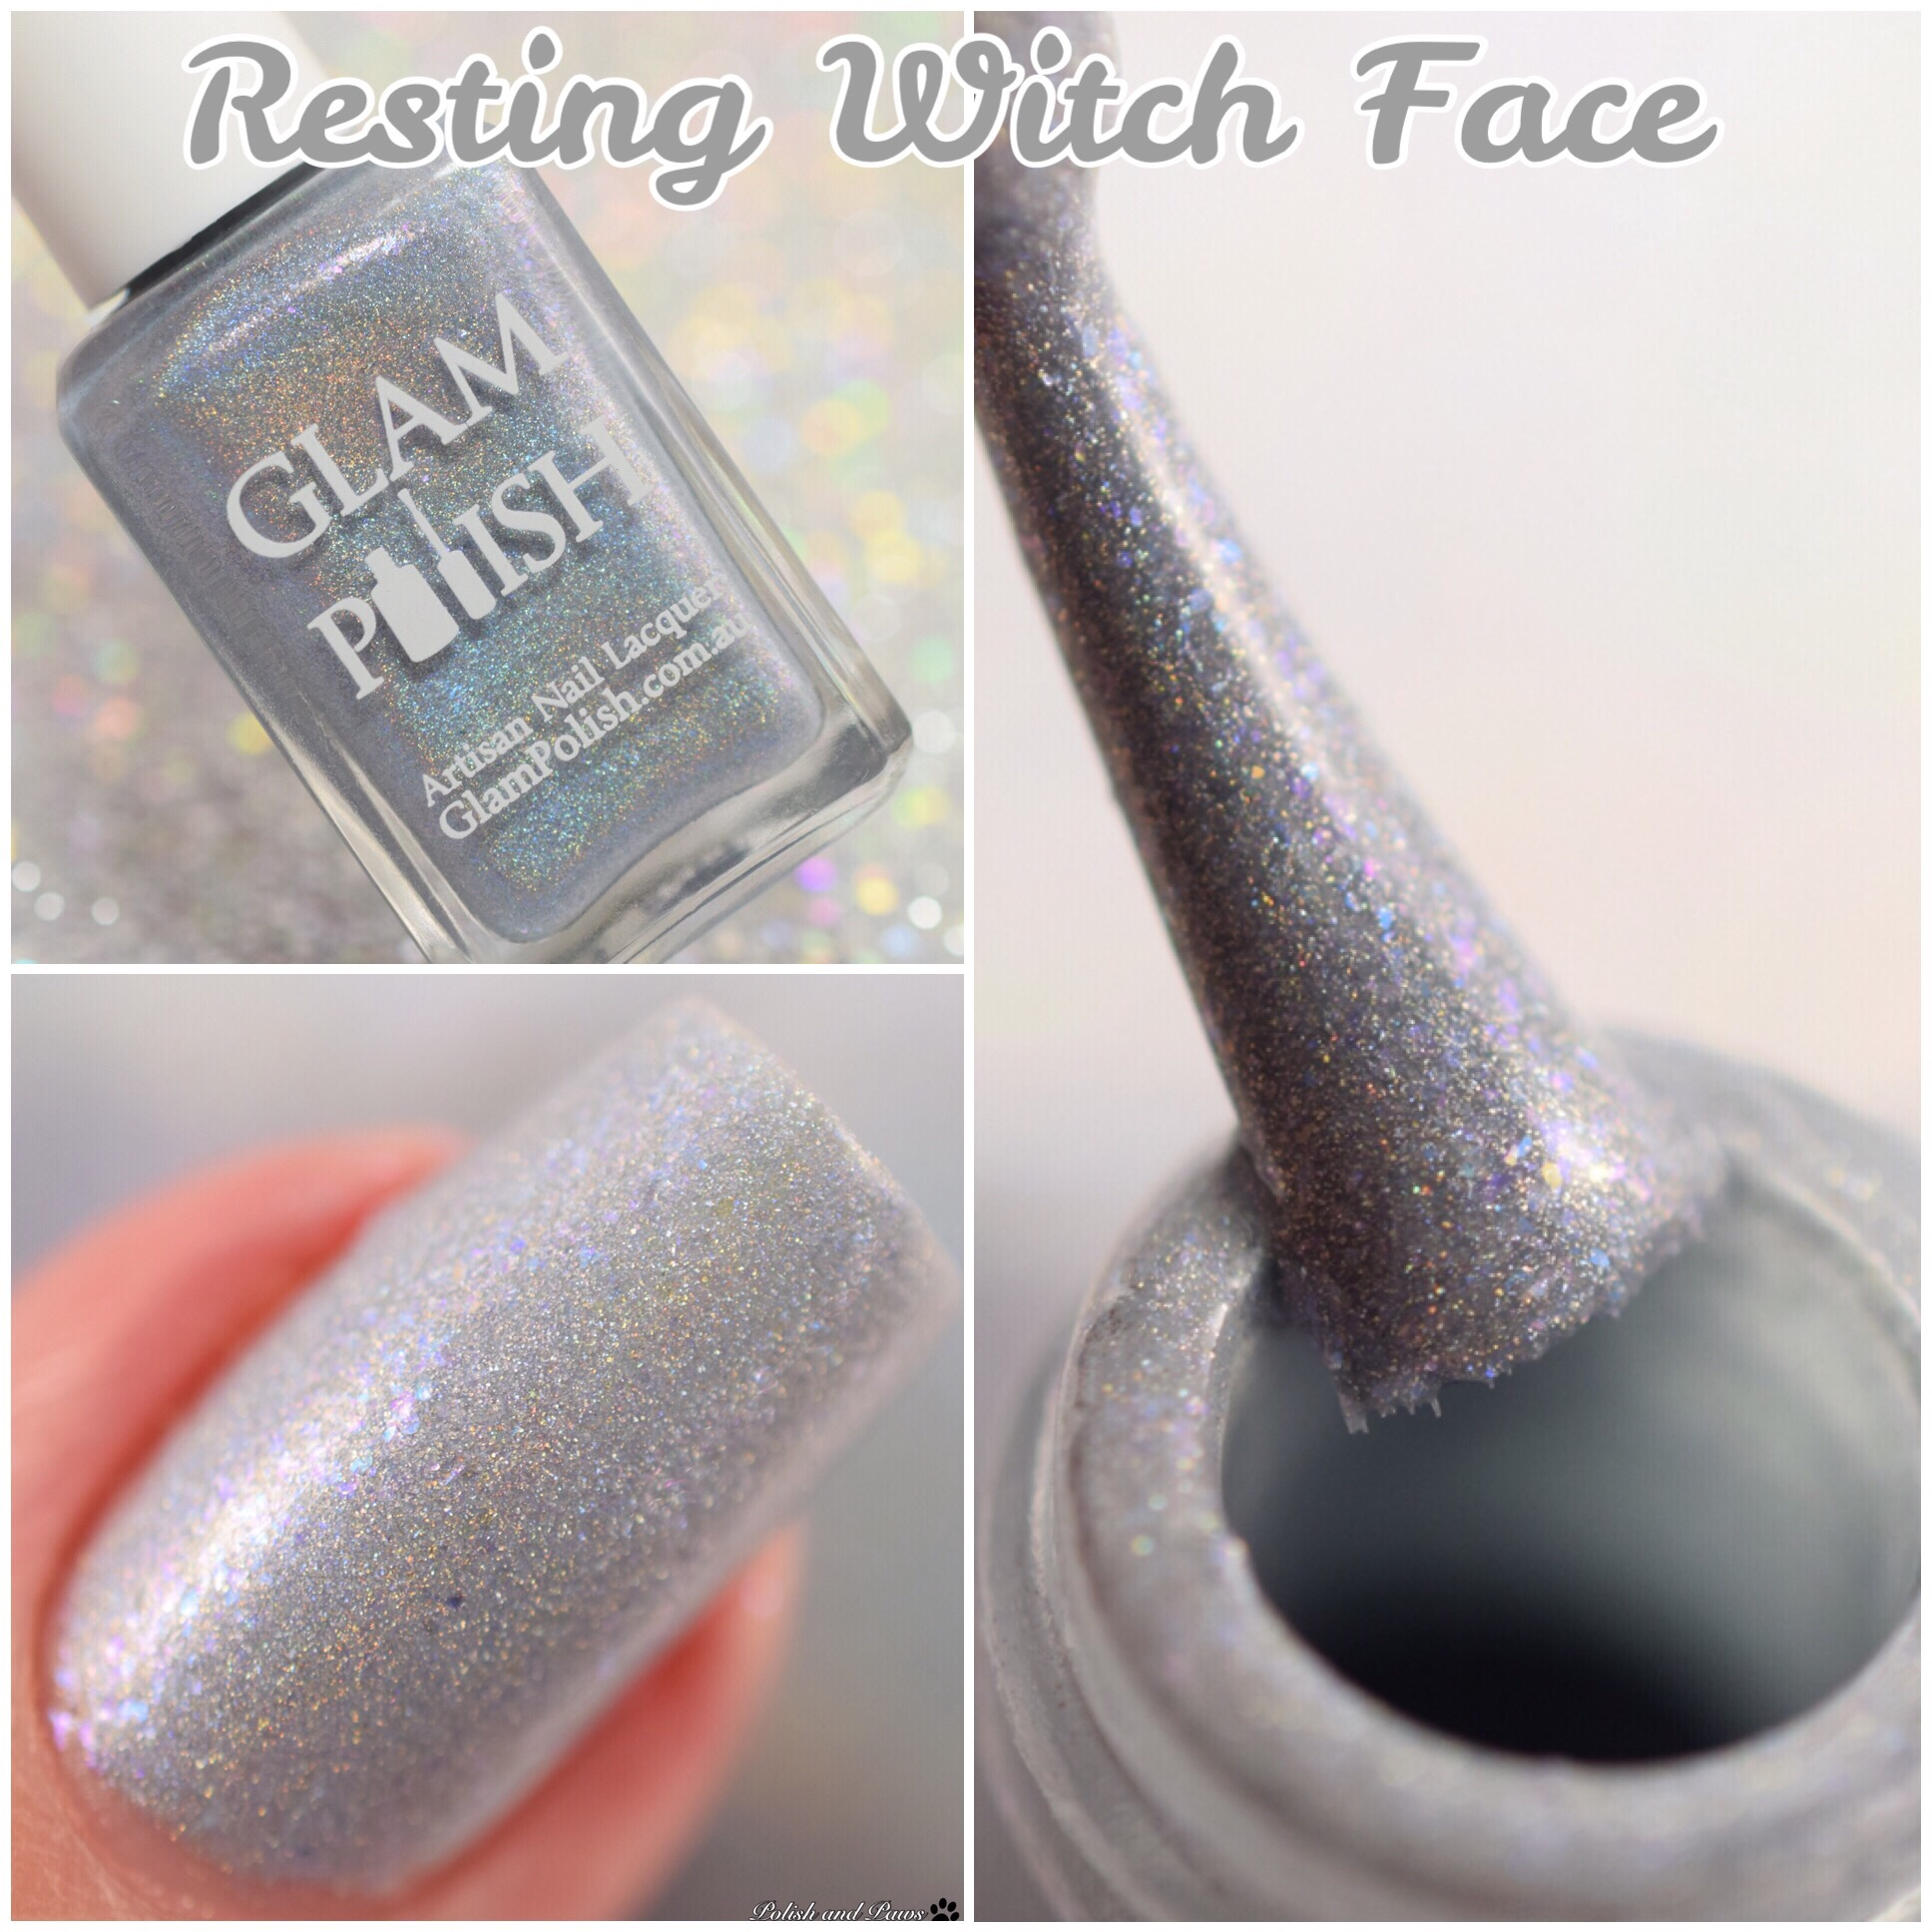 Glam Polish Resting Witch Face